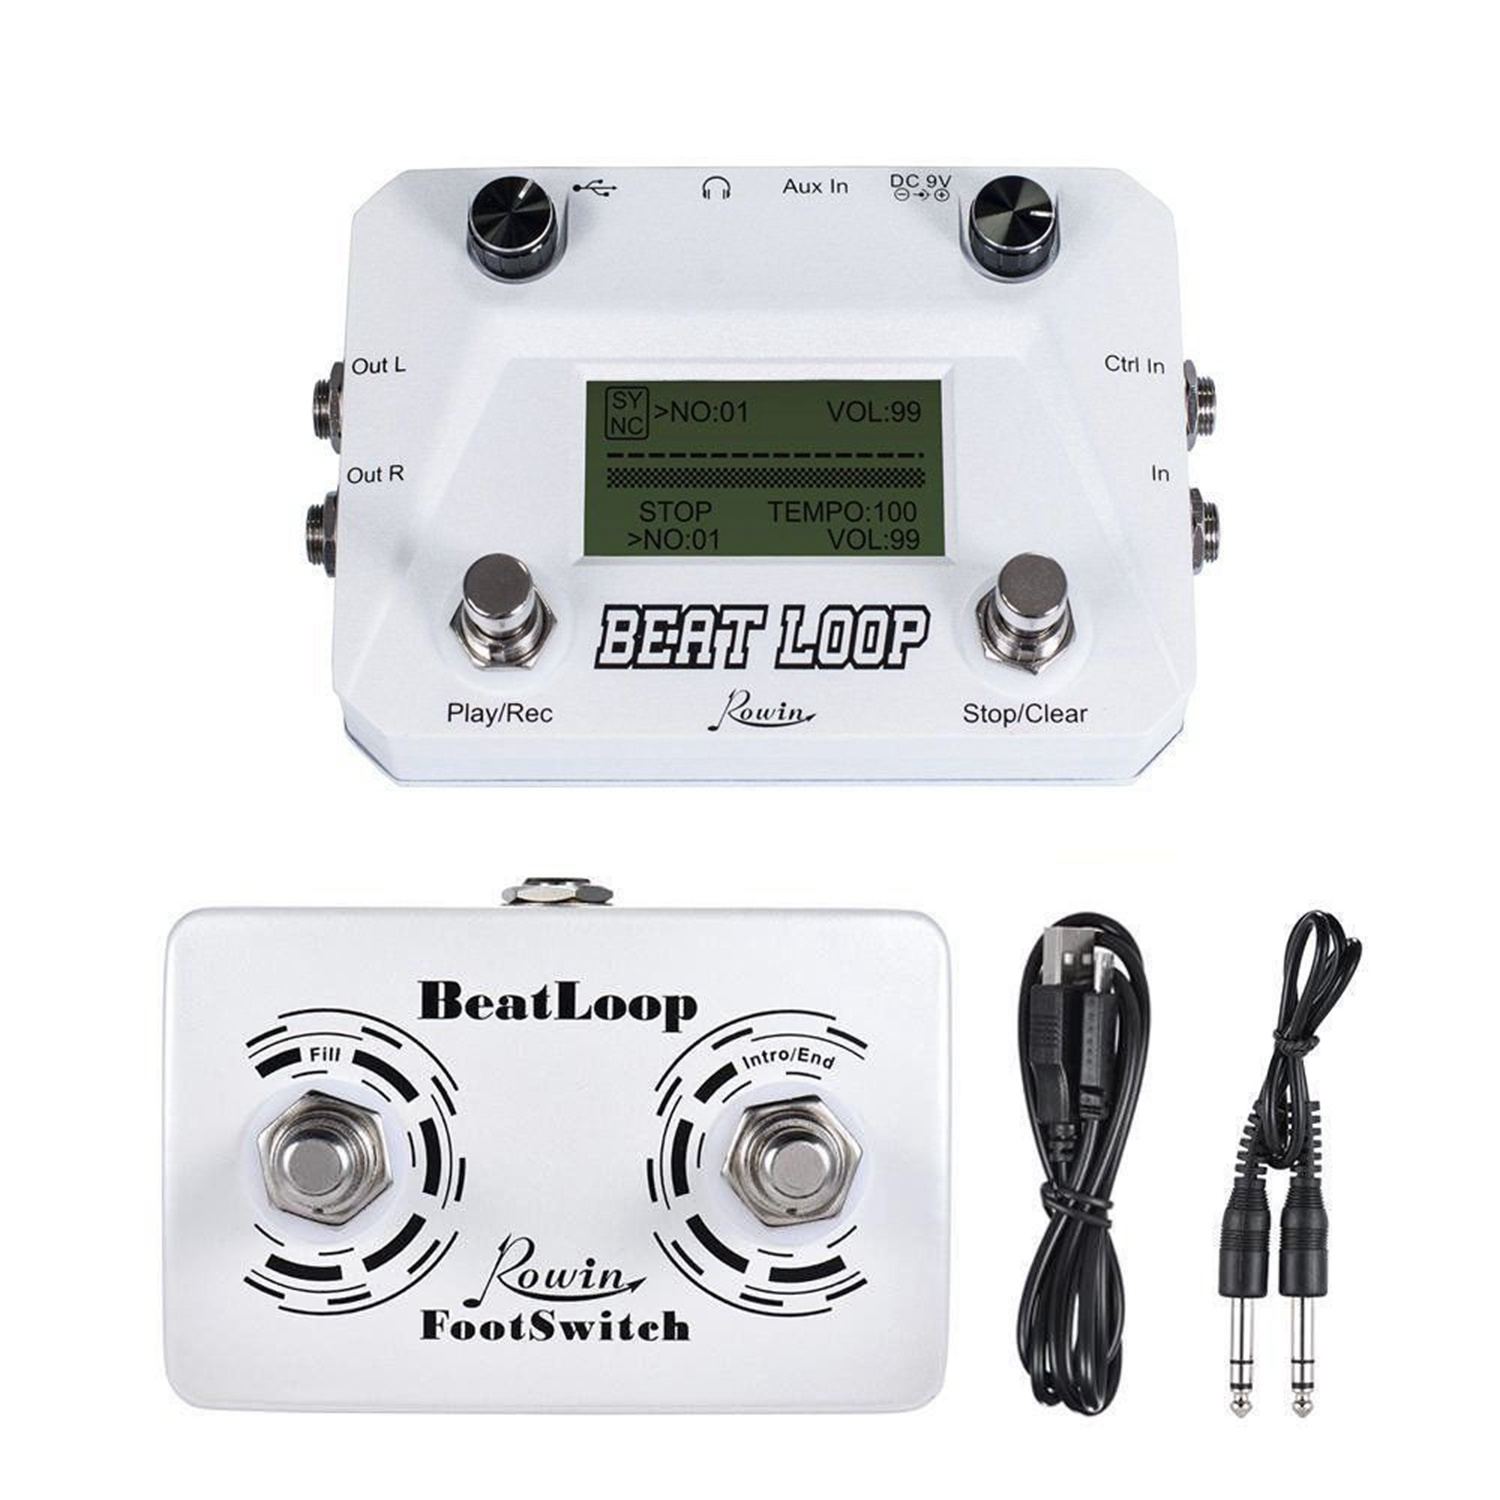 Rowin Lbl - 01 Guitar Beat Loop Drum Machine With Foot Switch 3 Different Modes Usb Type Beat Looper With Lcd BacklightRowin Lbl - 01 Guitar Beat Loop Drum Machine With Foot Switch 3 Different Modes Usb Type Beat Looper With Lcd Backlight